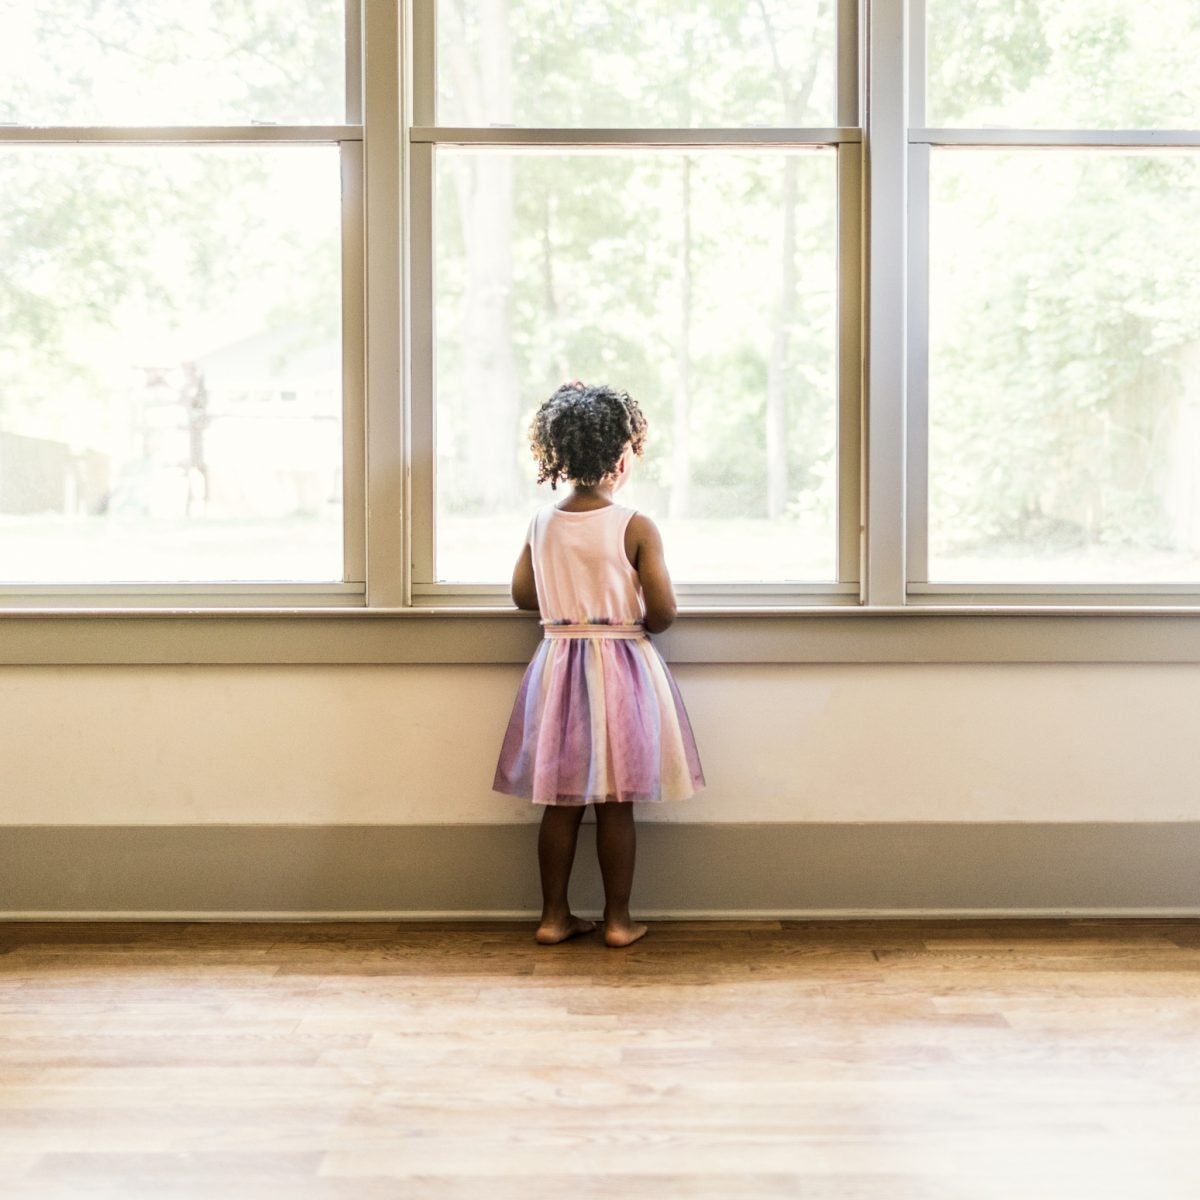 COVID-19 Highlights The Harsh Reality Facing Black Girls, Girls Of Color